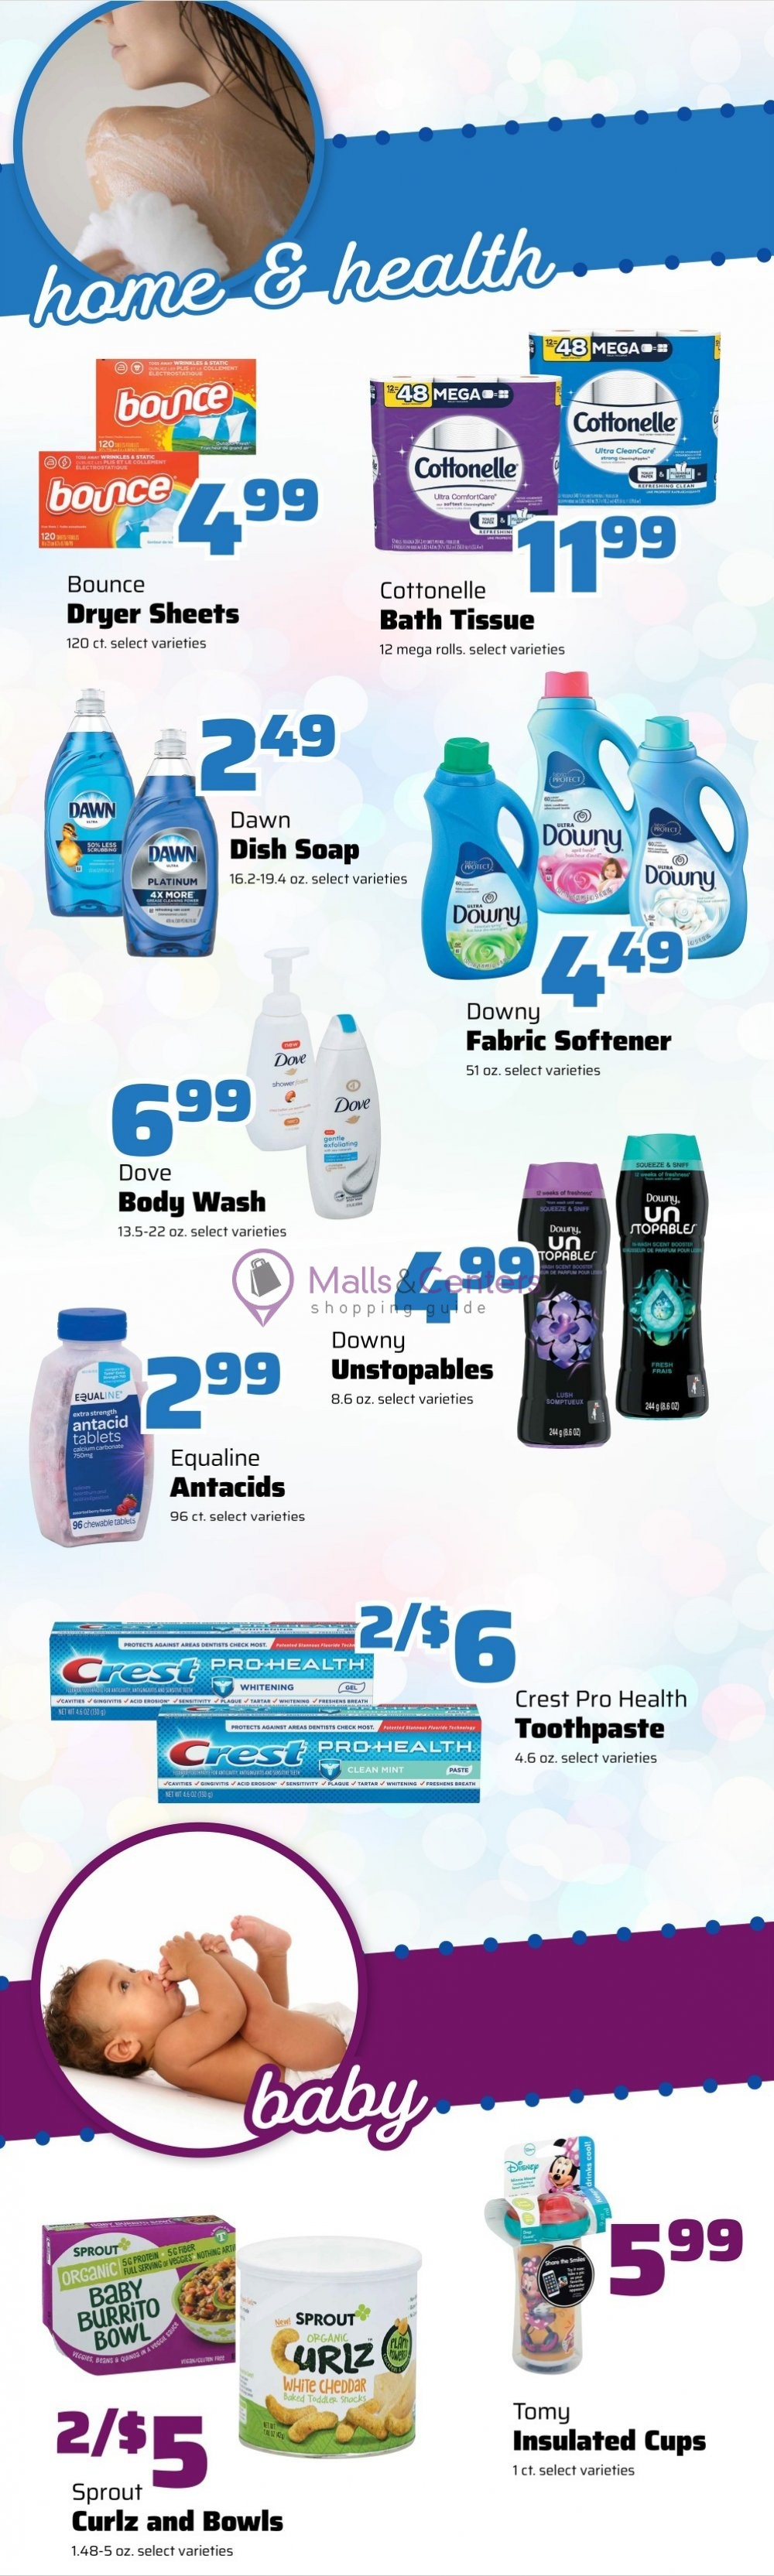 weekly ads County Market - page 1 - mallscenters.com